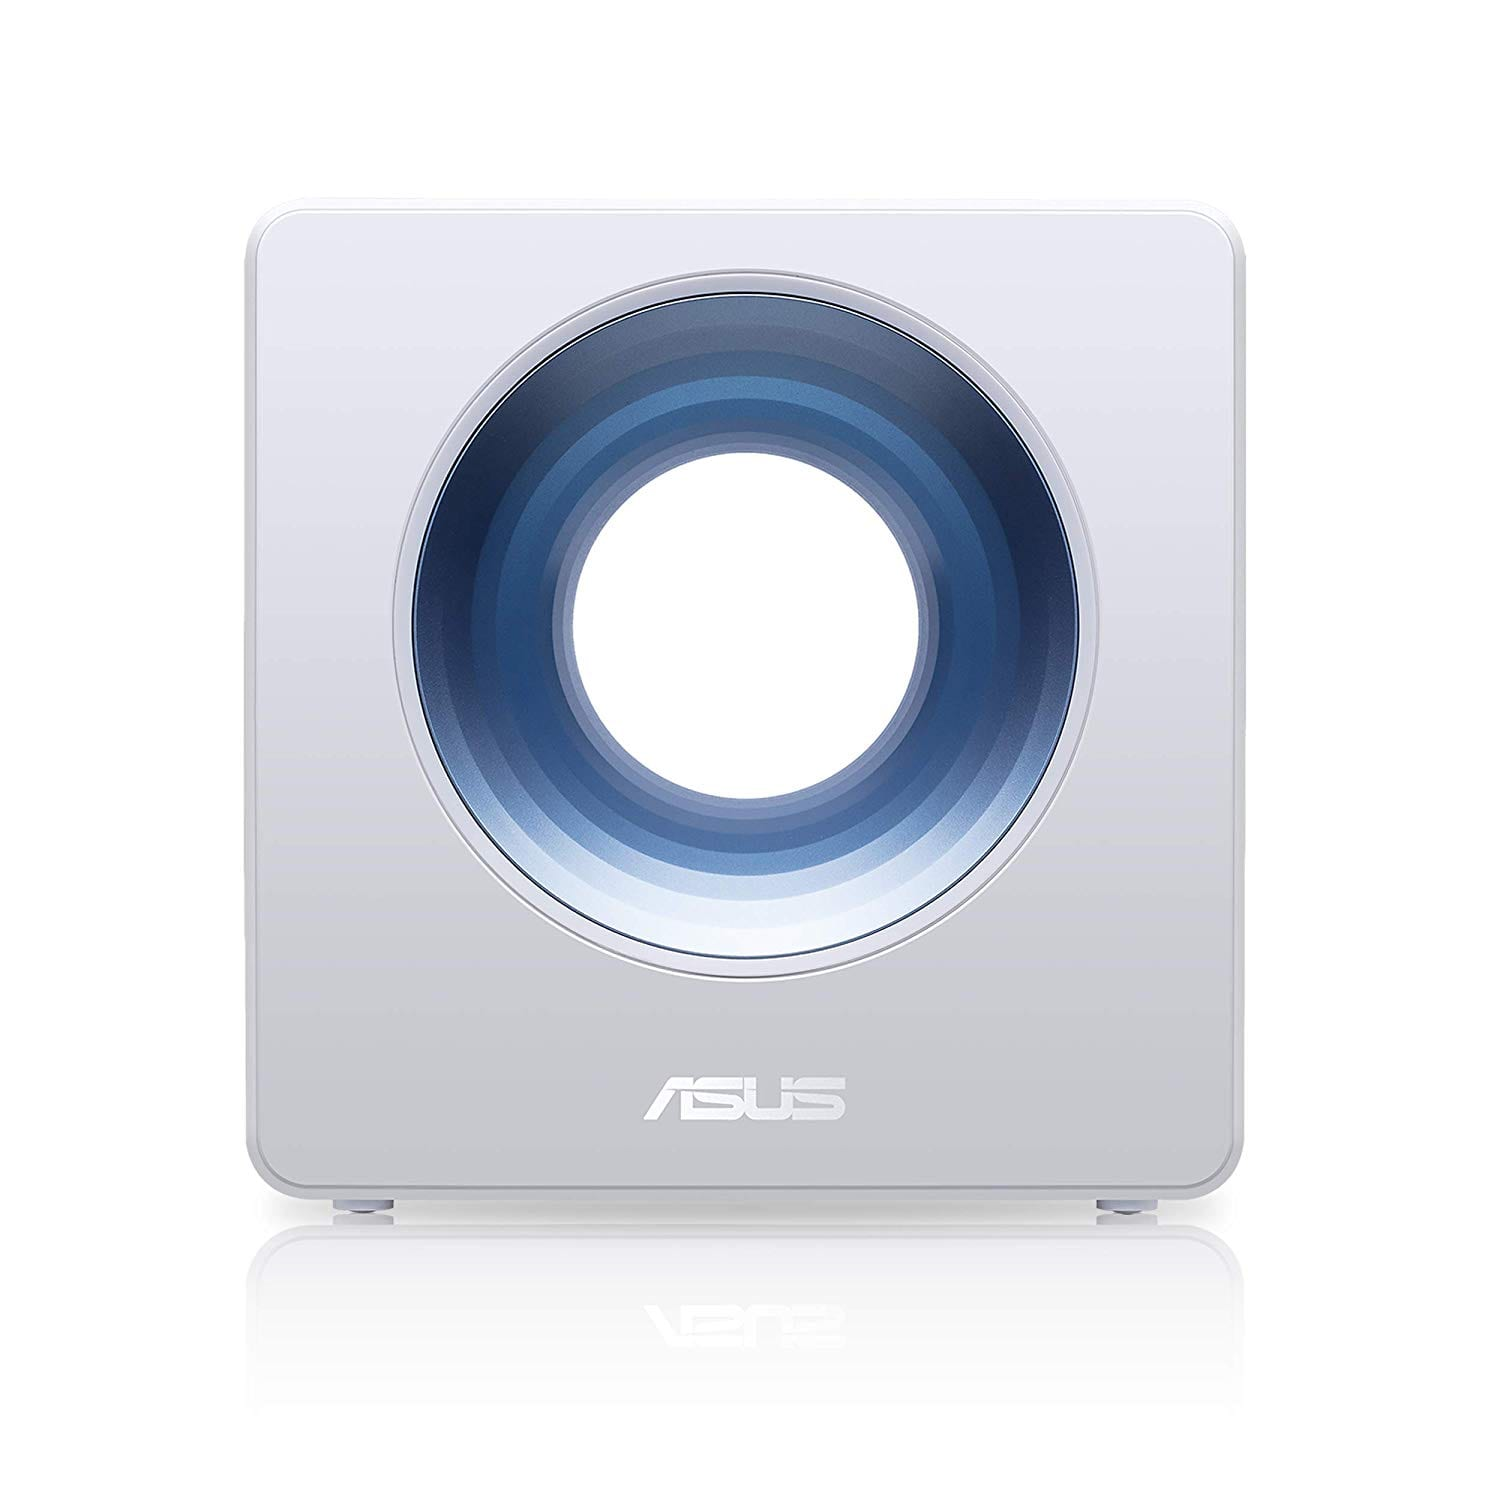 Asus Blue Cave AC2600 Dual-Band Wireless Router for Smart